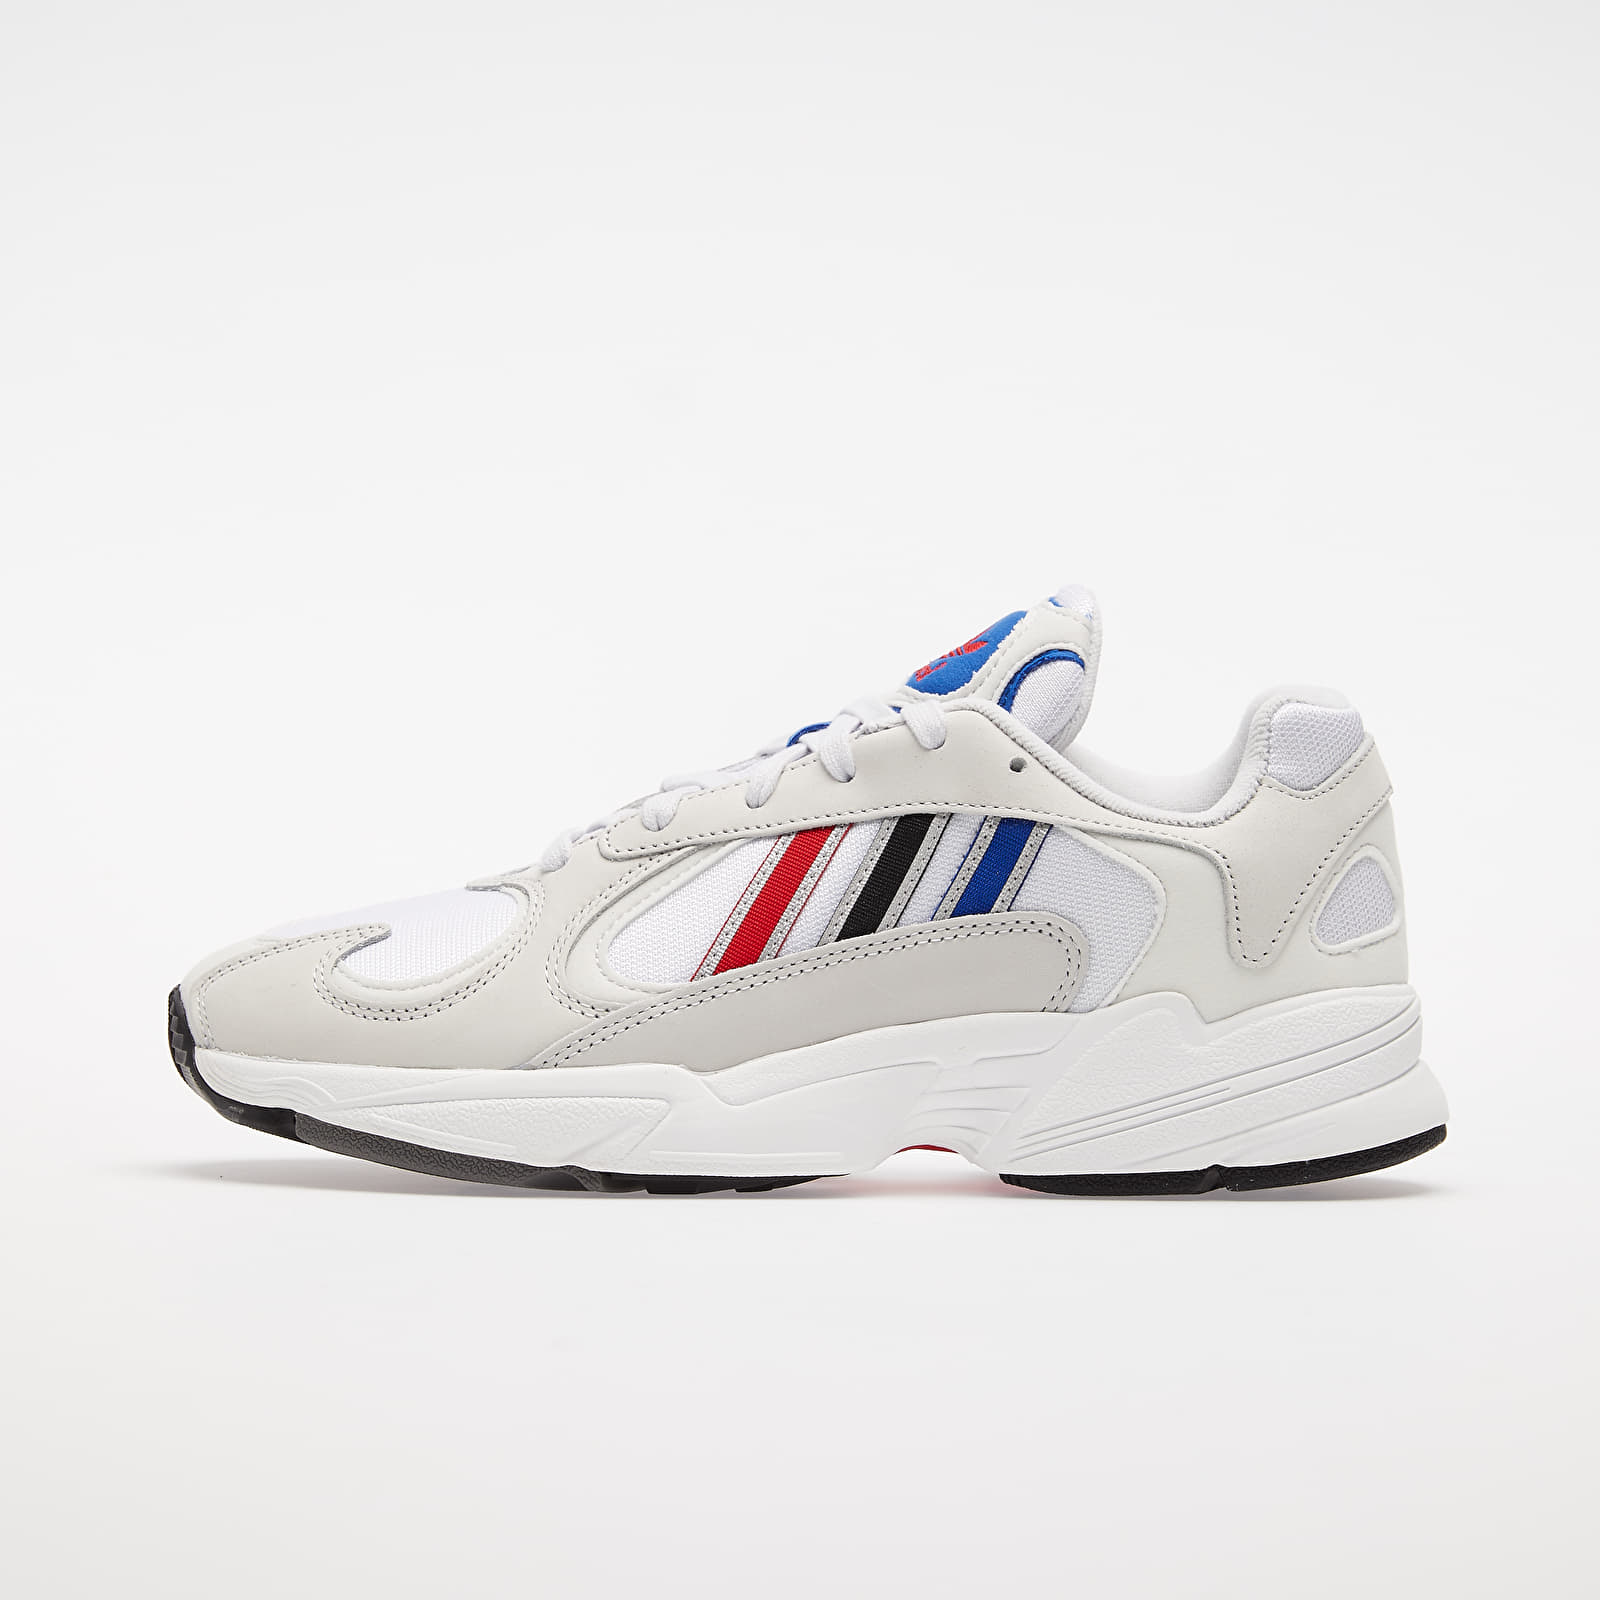 Men's shoes adidas Yung-1 Crystal White/ Silver Metalic/ Core Black